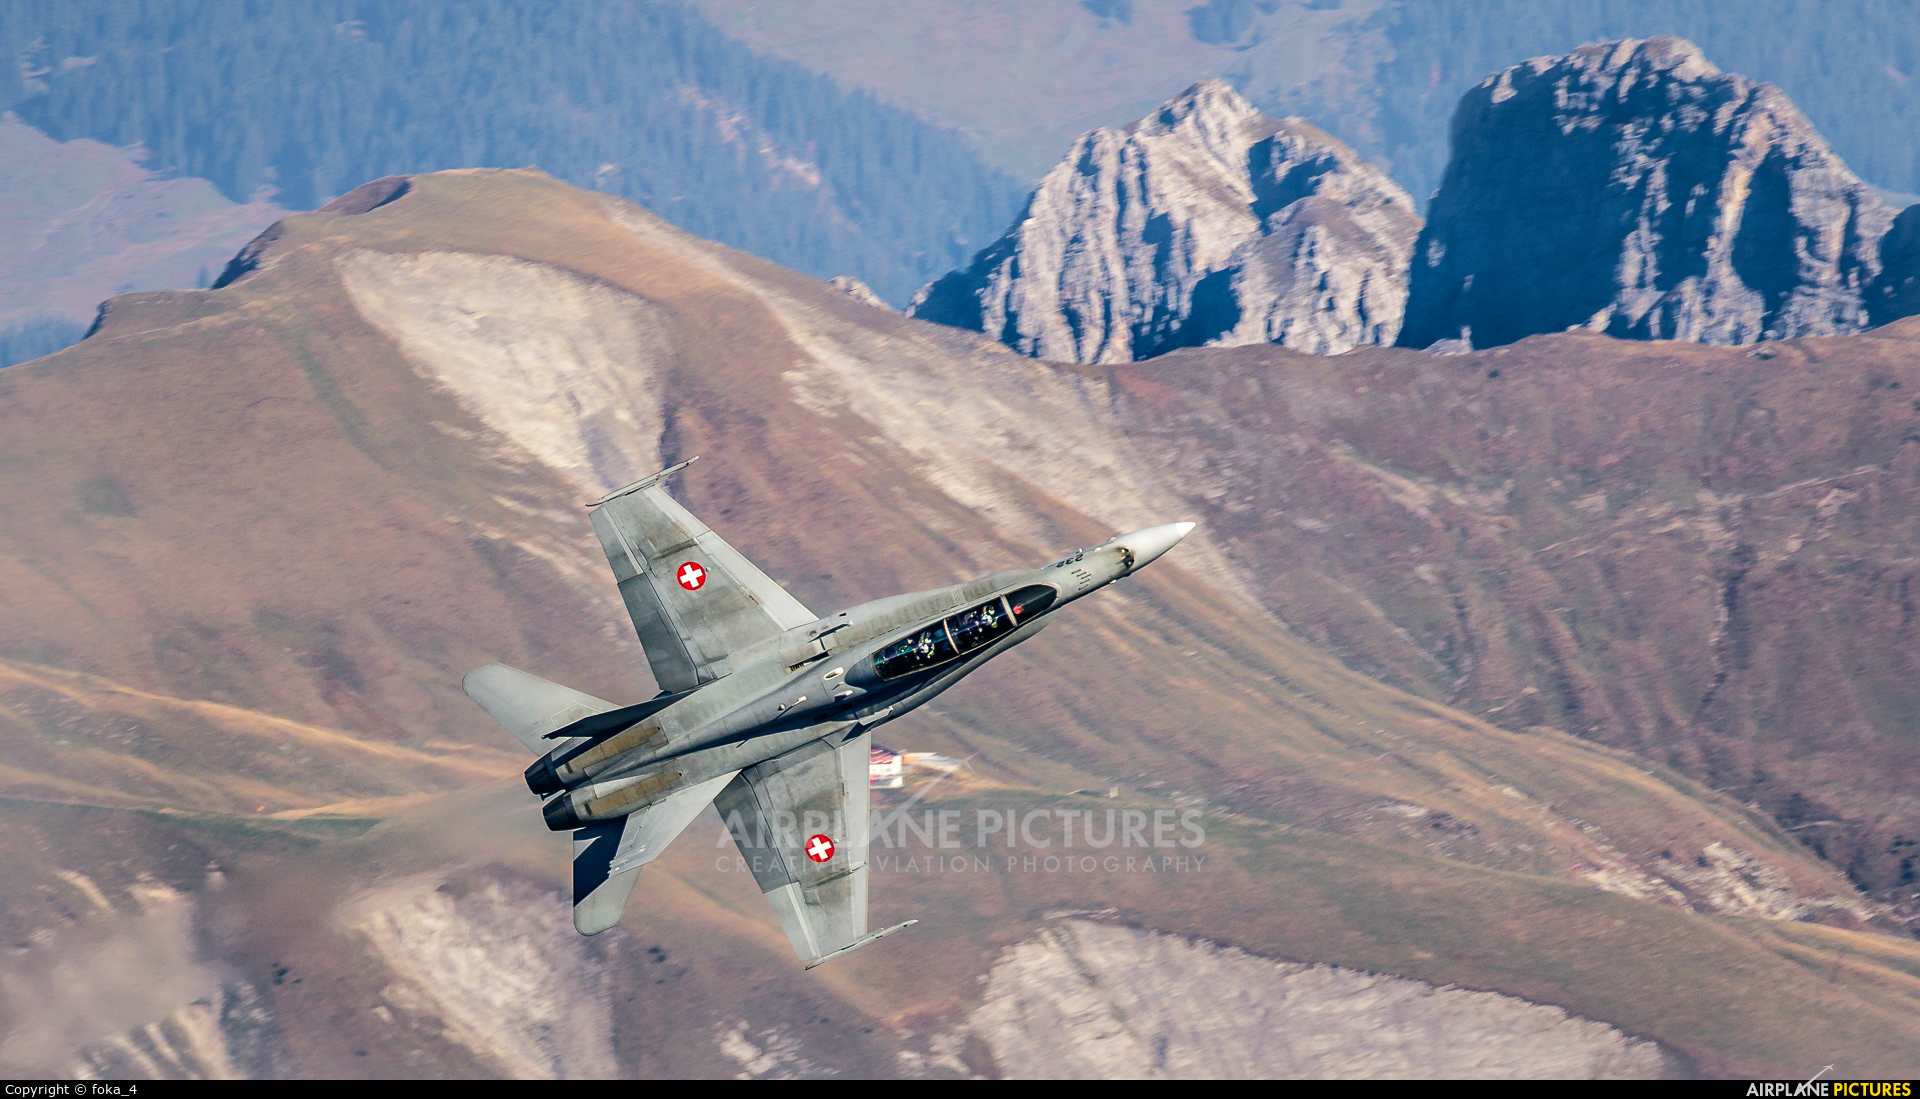 Switzerland - Air Force J-5232 aircraft at Axalp - Ebenfluh Range